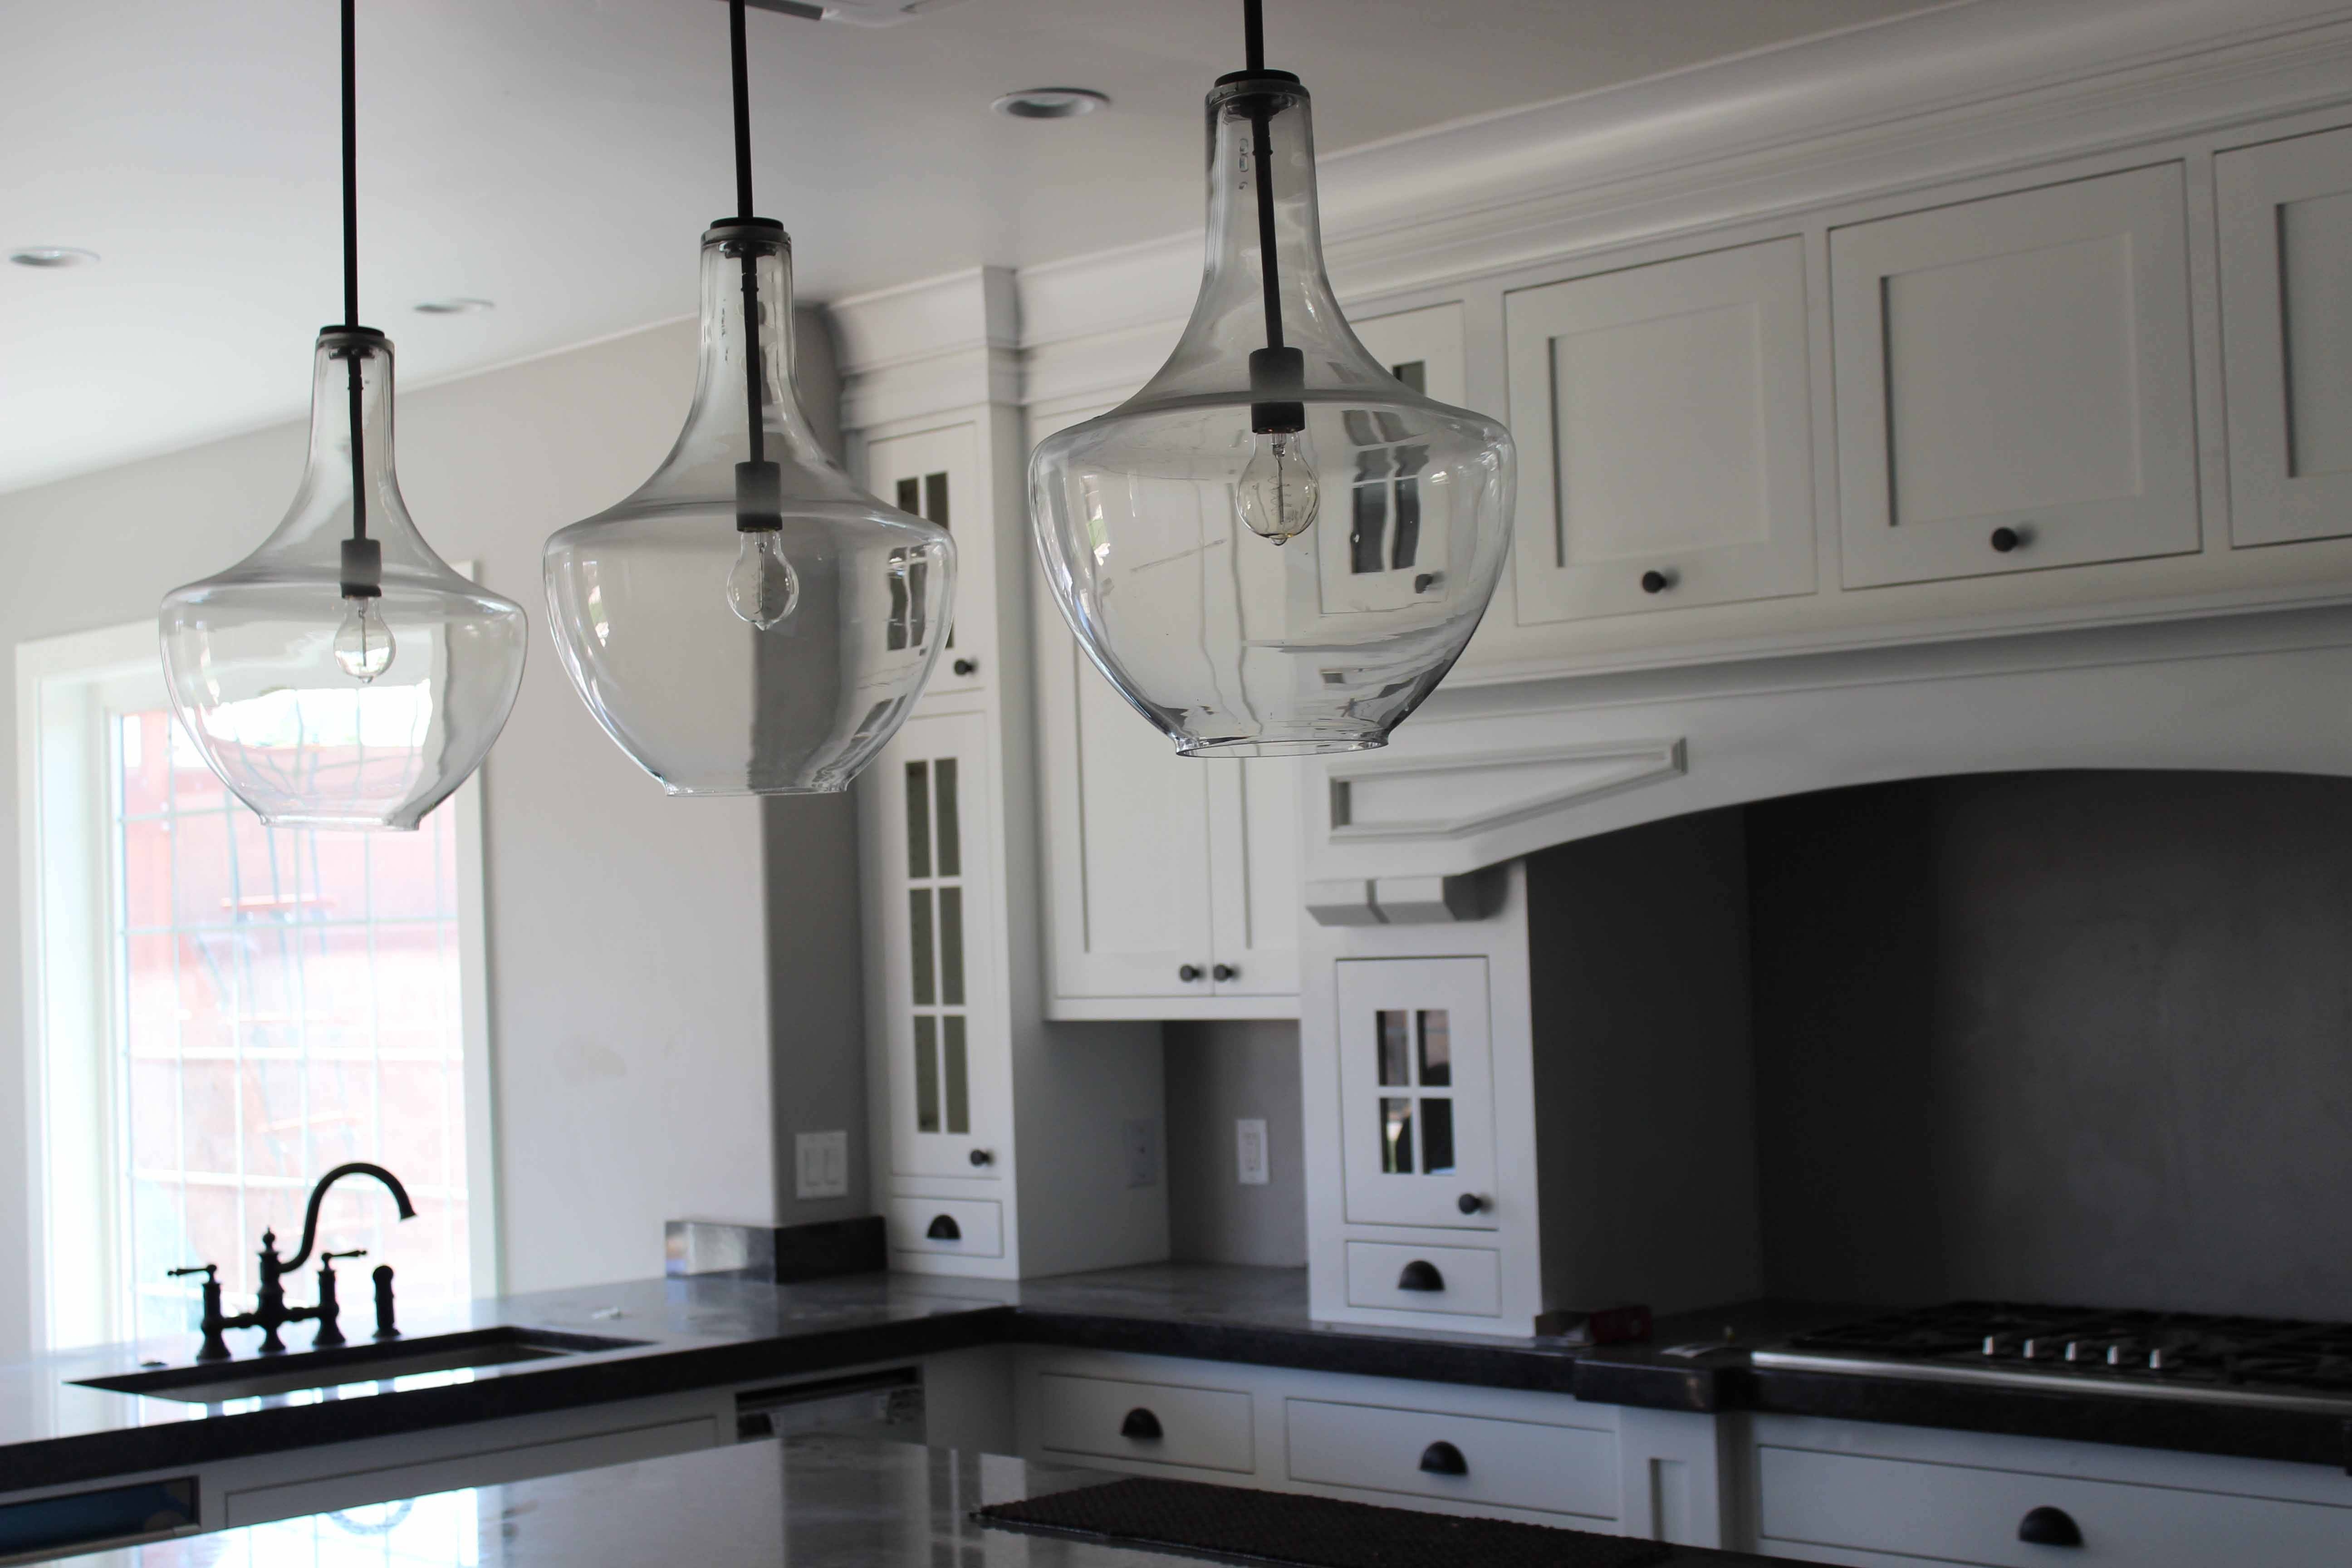 Incredible Glass Kitchen Pendant Lights On Interior Decorating For Glass Kitchen Pendant Lights (View 10 of 15)